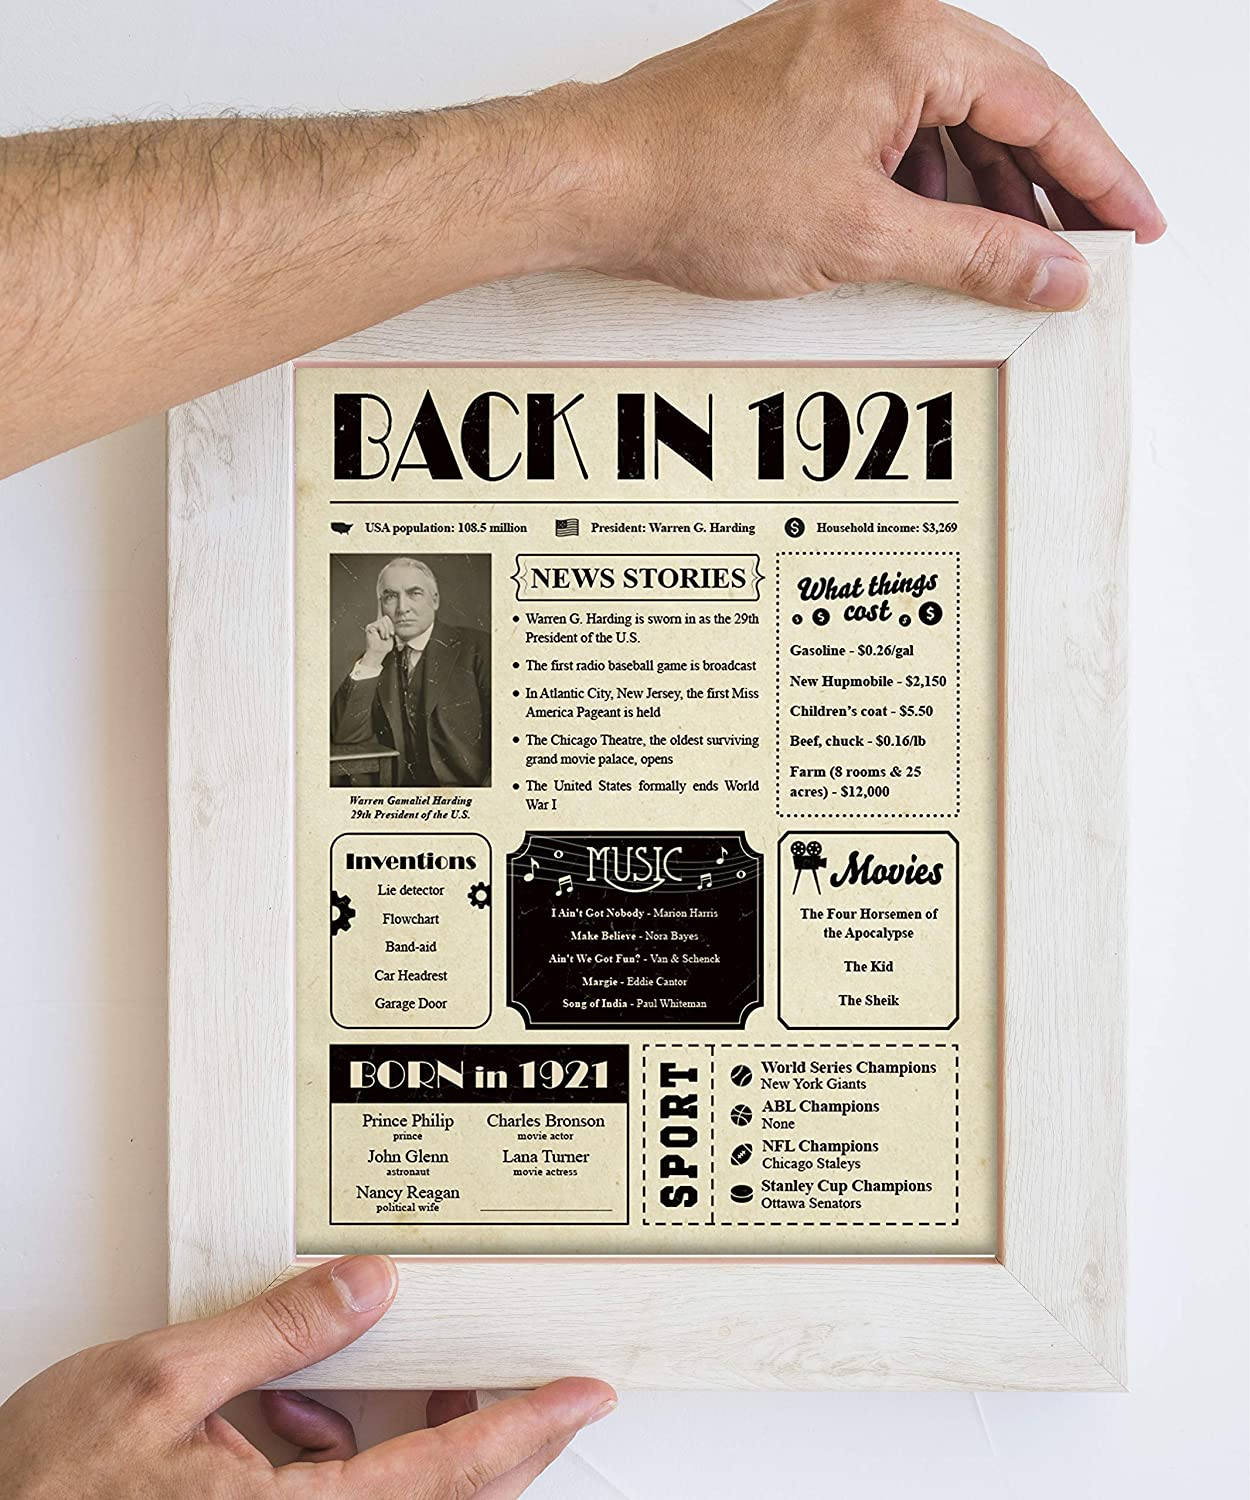 Birthday Decorations Vintage for Grandma and Grandpa Paintio Back in 1920 Poster Unframed 8x10-100th Birthday Gifts for Women and Men Gift Ideas for 100 Years Old Man and Woman Under 10 Dollars